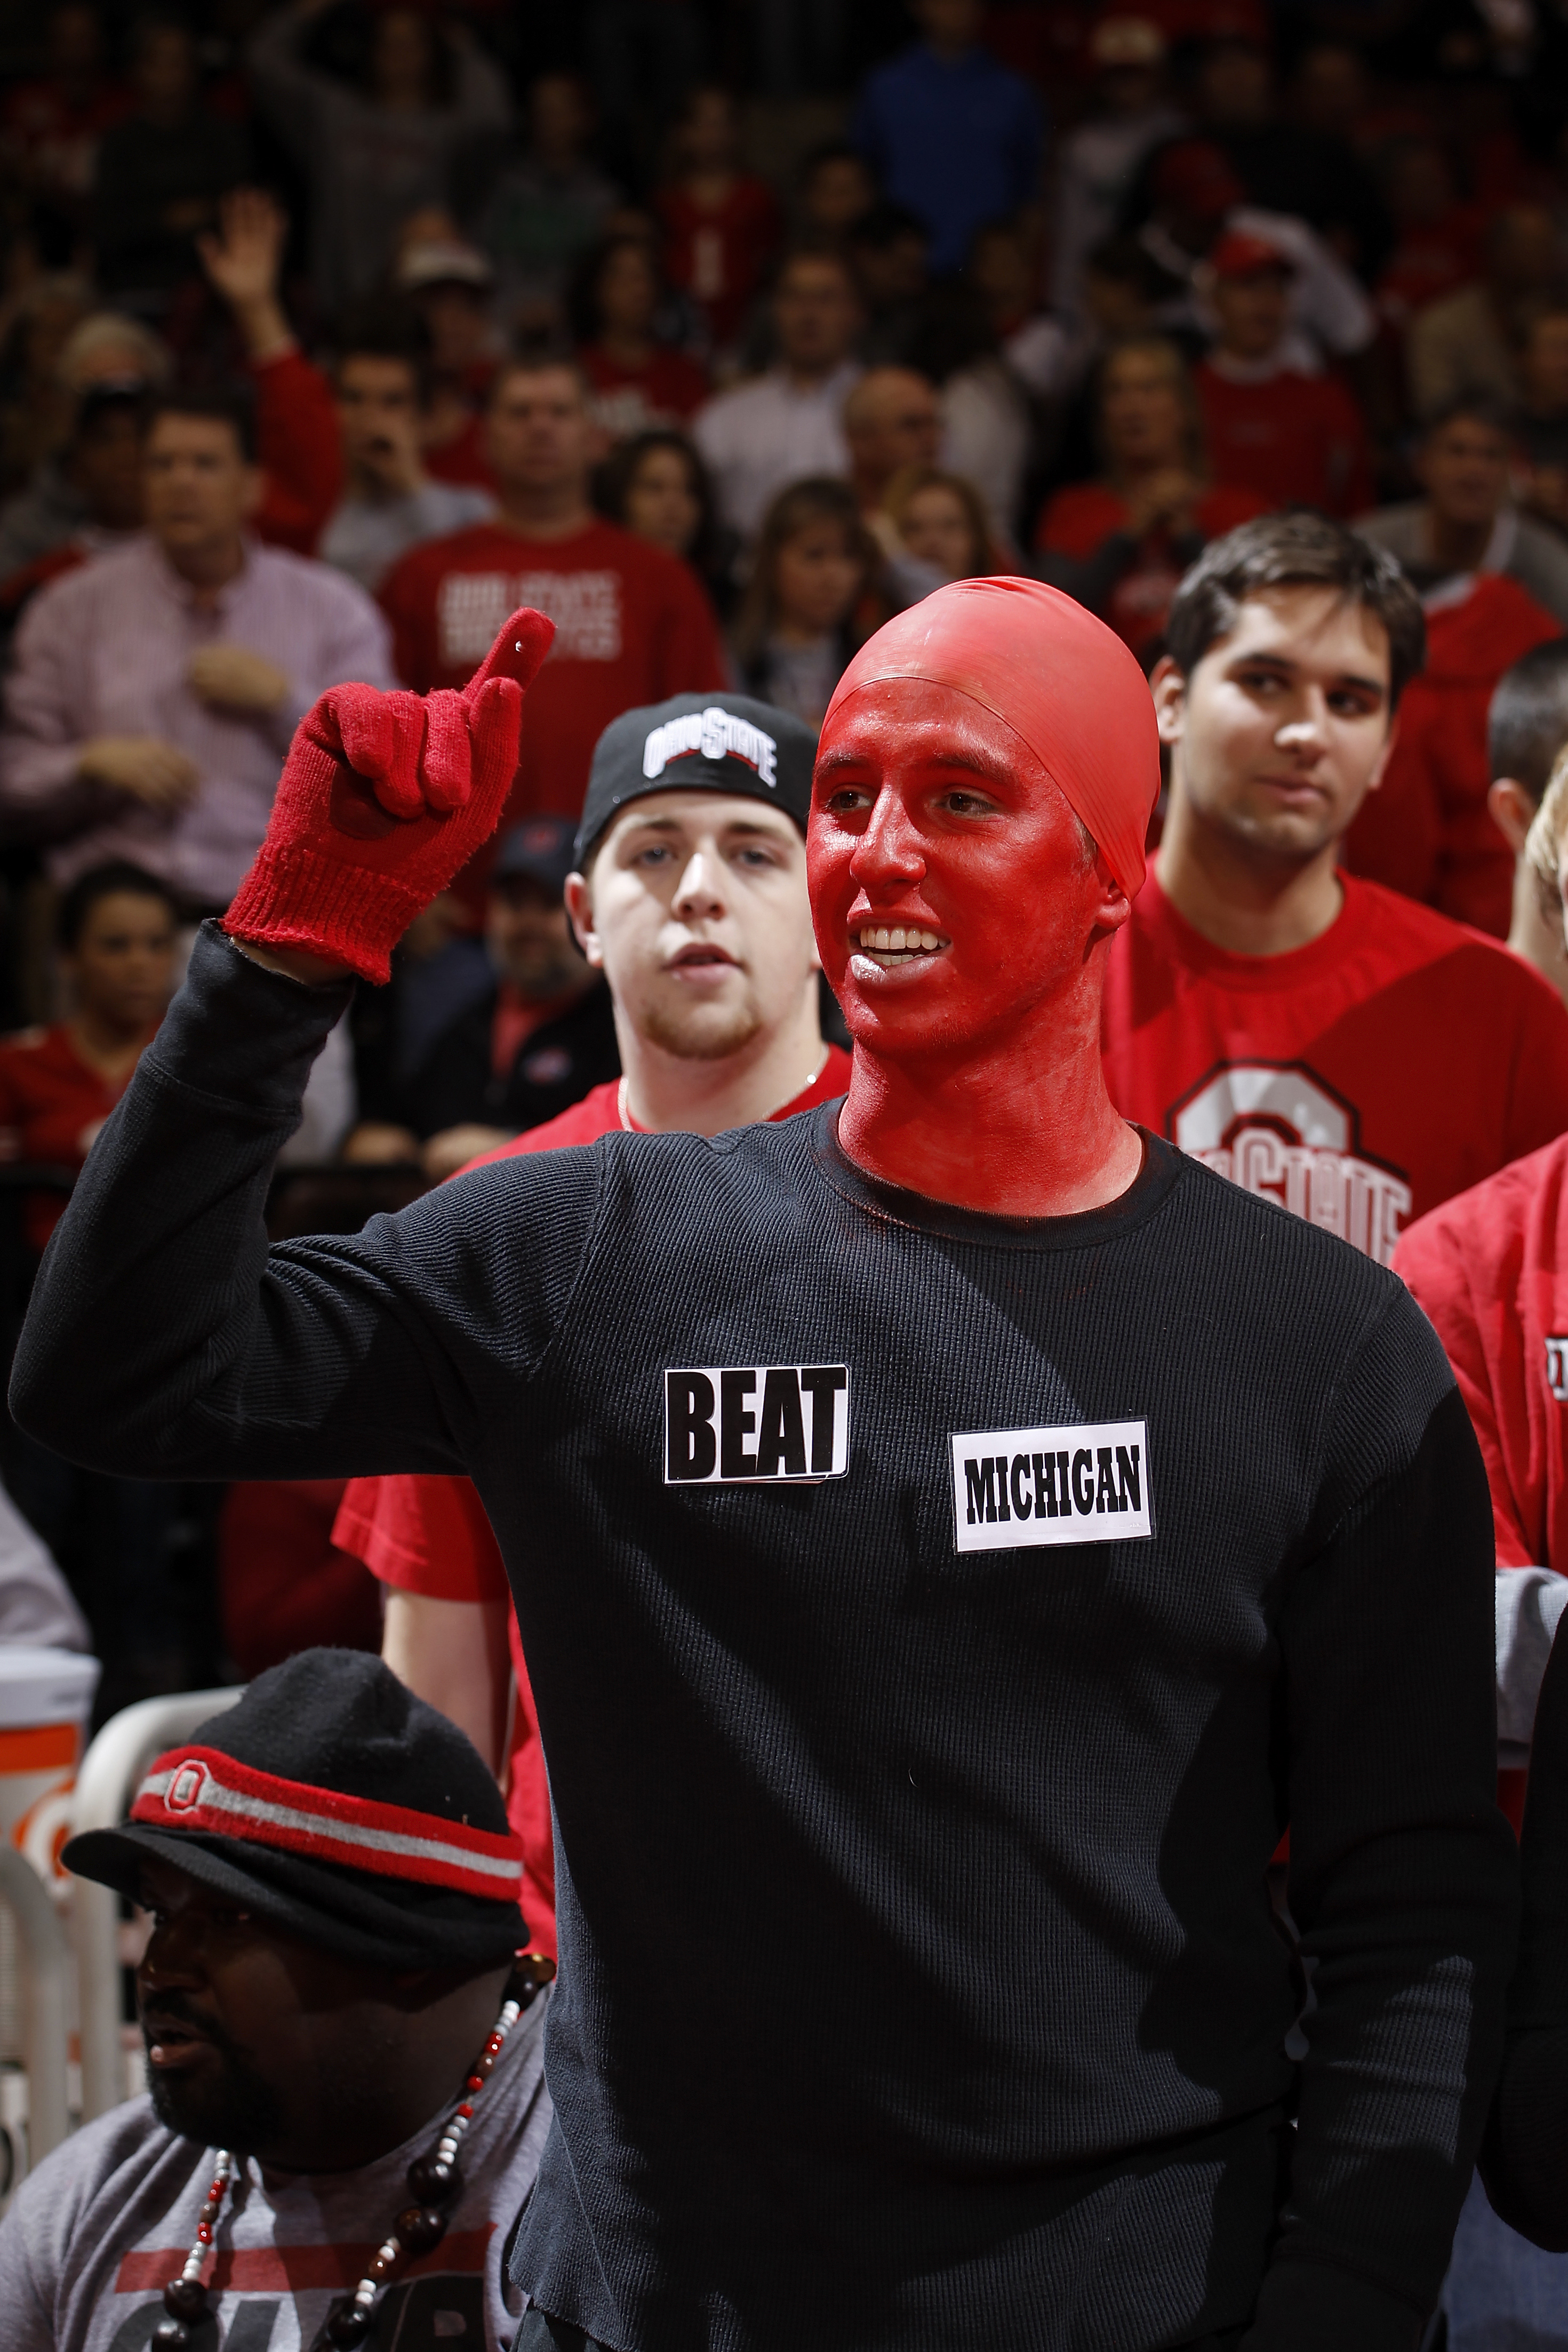 COLUMBUS, OH - NOVEMBER 26: An Ohio State Buckeyes fan wears a shirt with reference to Saturday's Michigan at Ohio State football rivalry game cheers during the game against the Miami RedHawks at Value City Arena on November 26, 2010 in Columbus, Ohio. Oh